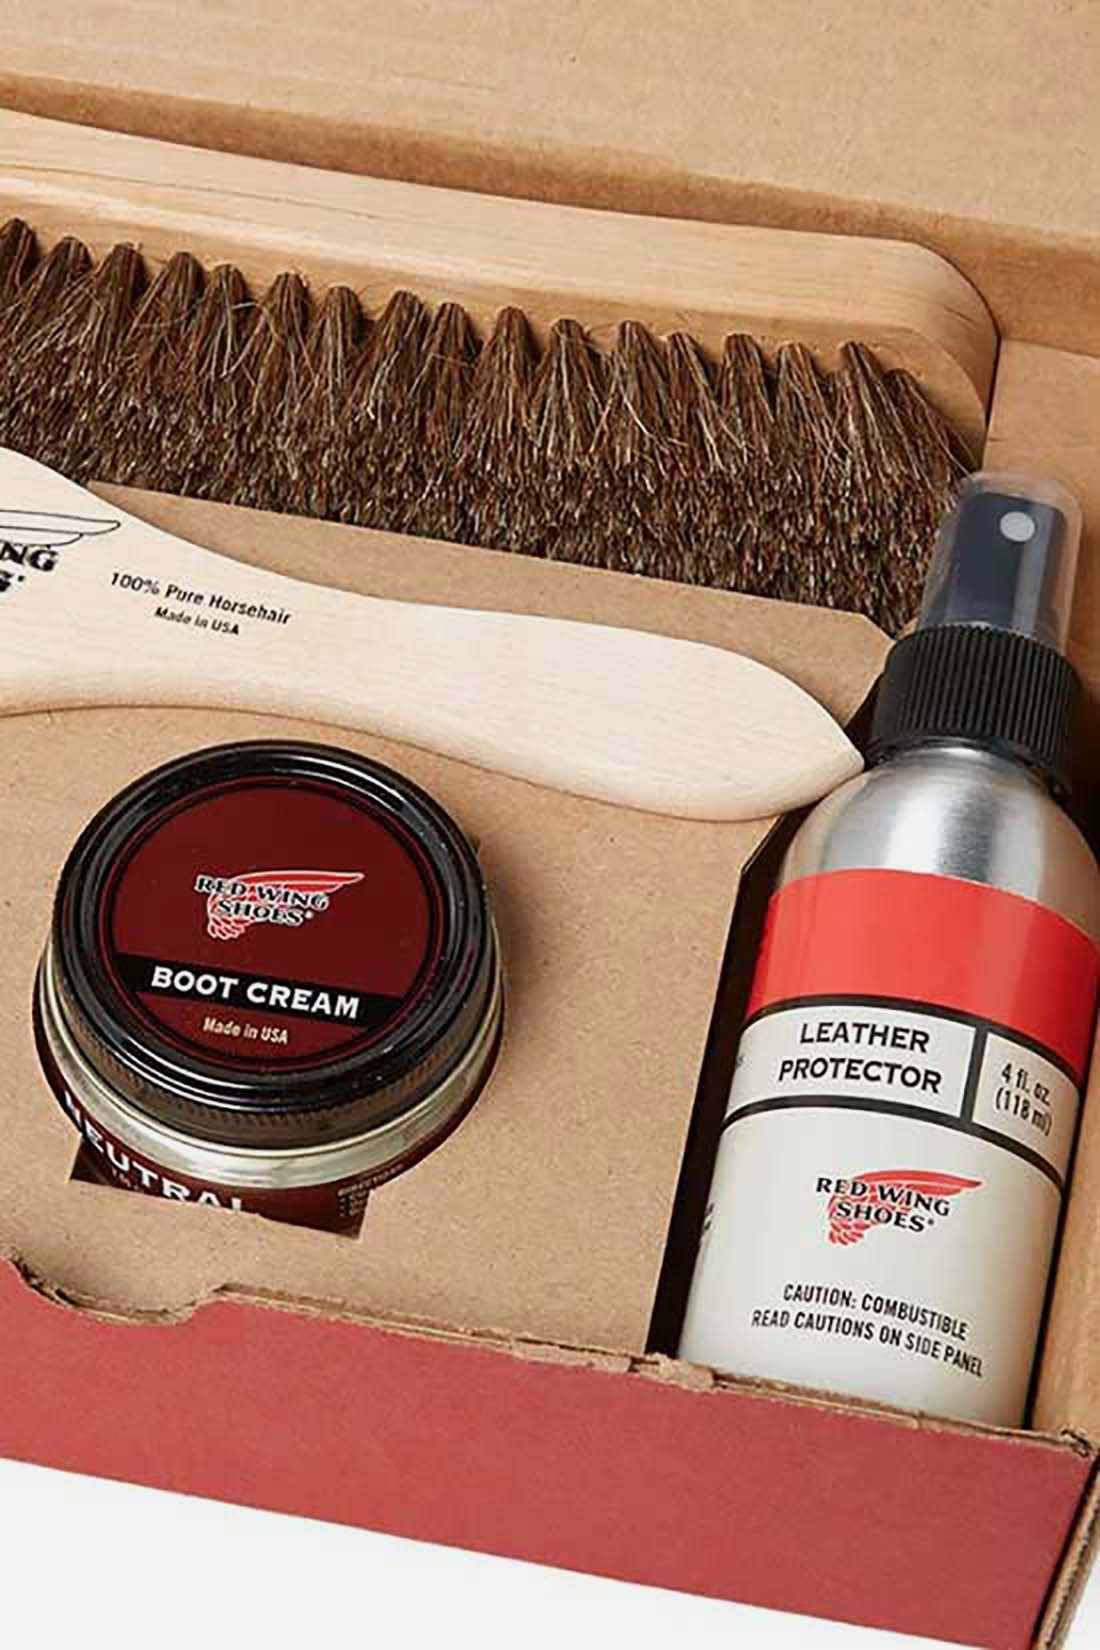 RED WING / Smooth finish leather pack Style n.97097